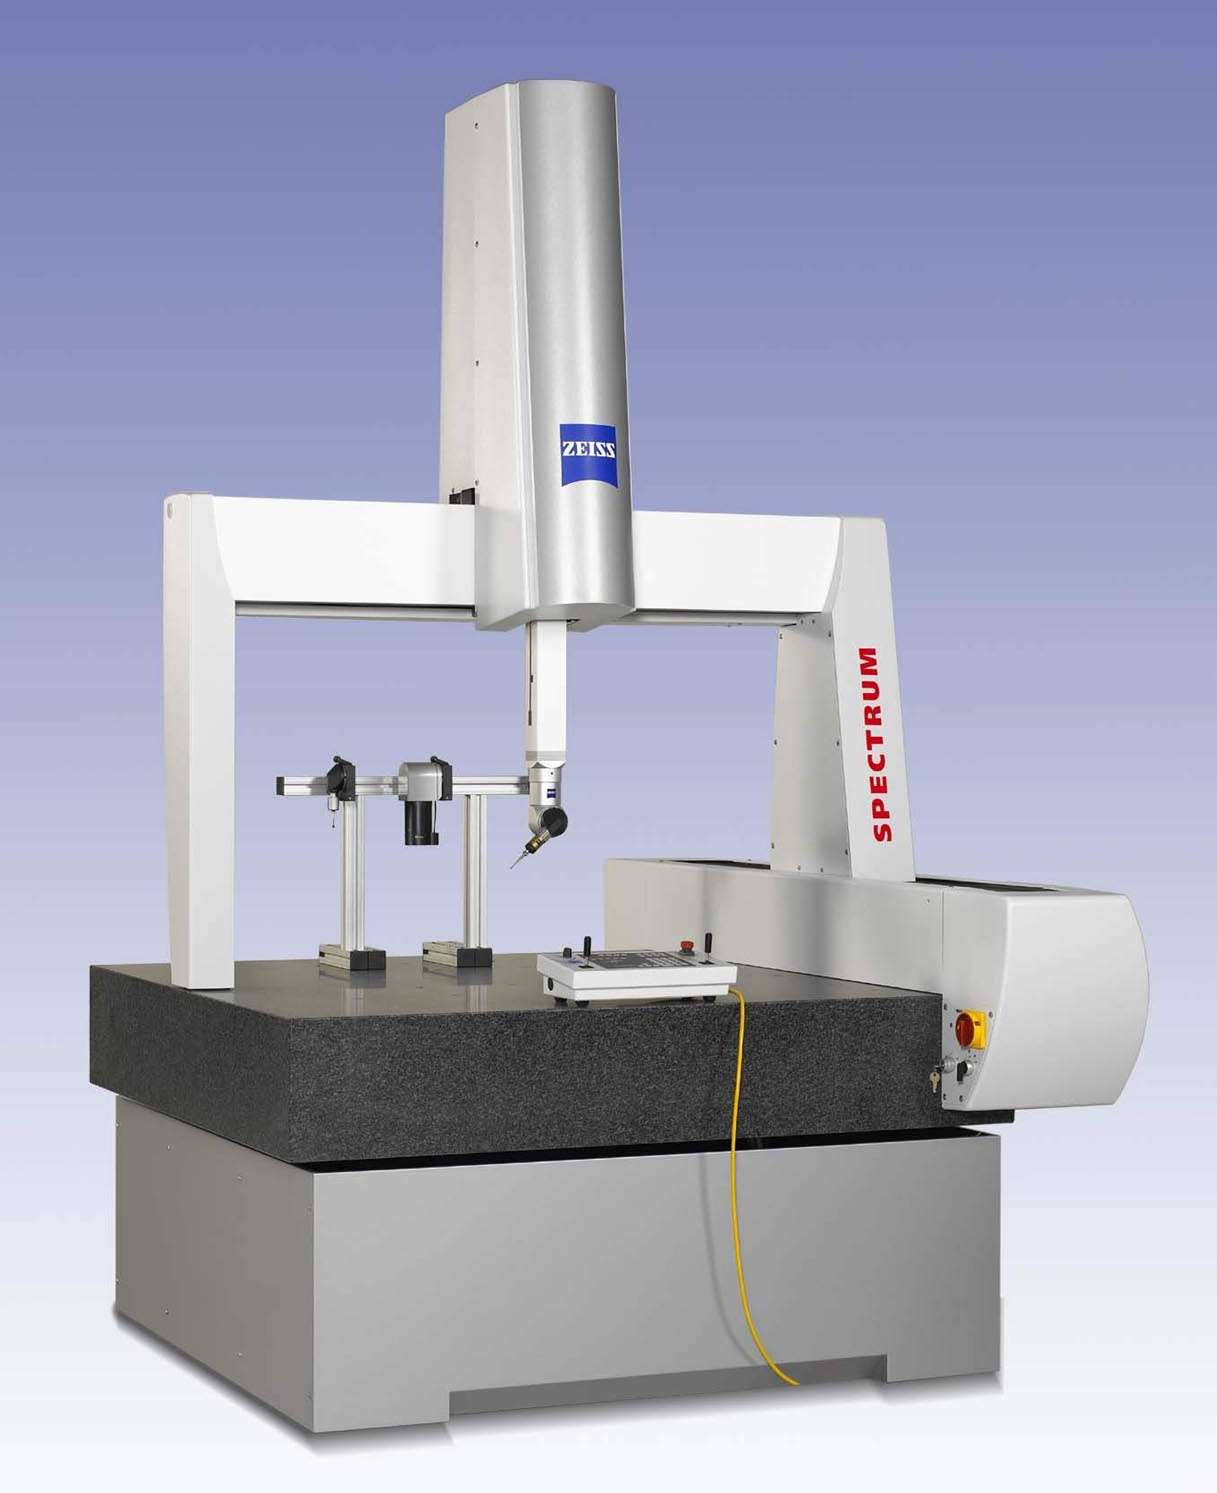 Coordinate Measuring Machine : Carl zeiss industrial measuring technology introduces new